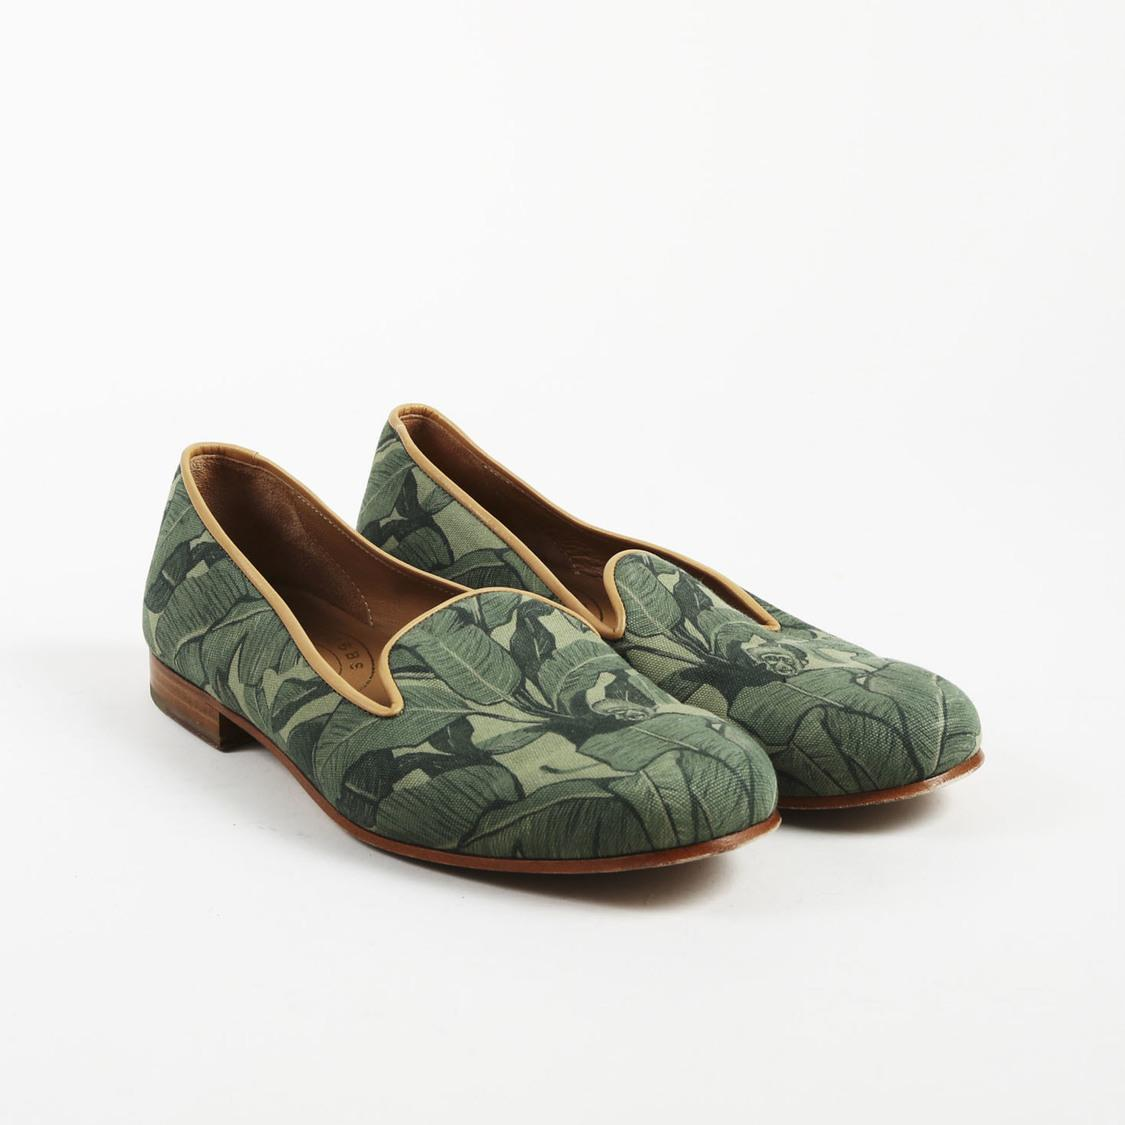 8c924cd7108 Lyst - Stubbs   Wootton Mens Green Canvas Palm Print Loafers in Green